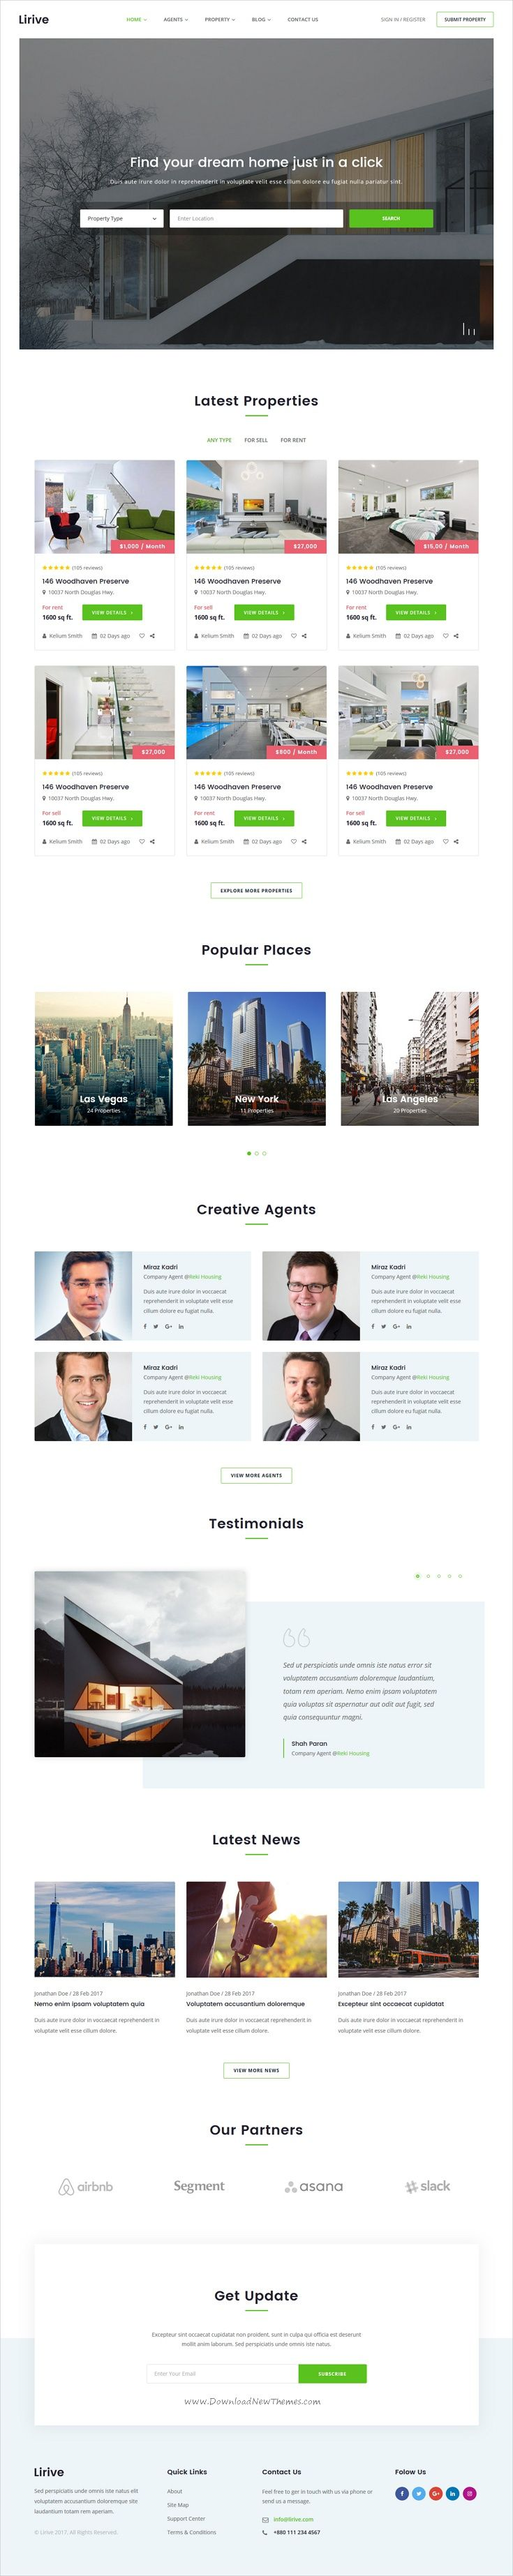 Lirive is clean and modern design 2in1 responsive #HTML5 template for #property and real estate agencies website download now..